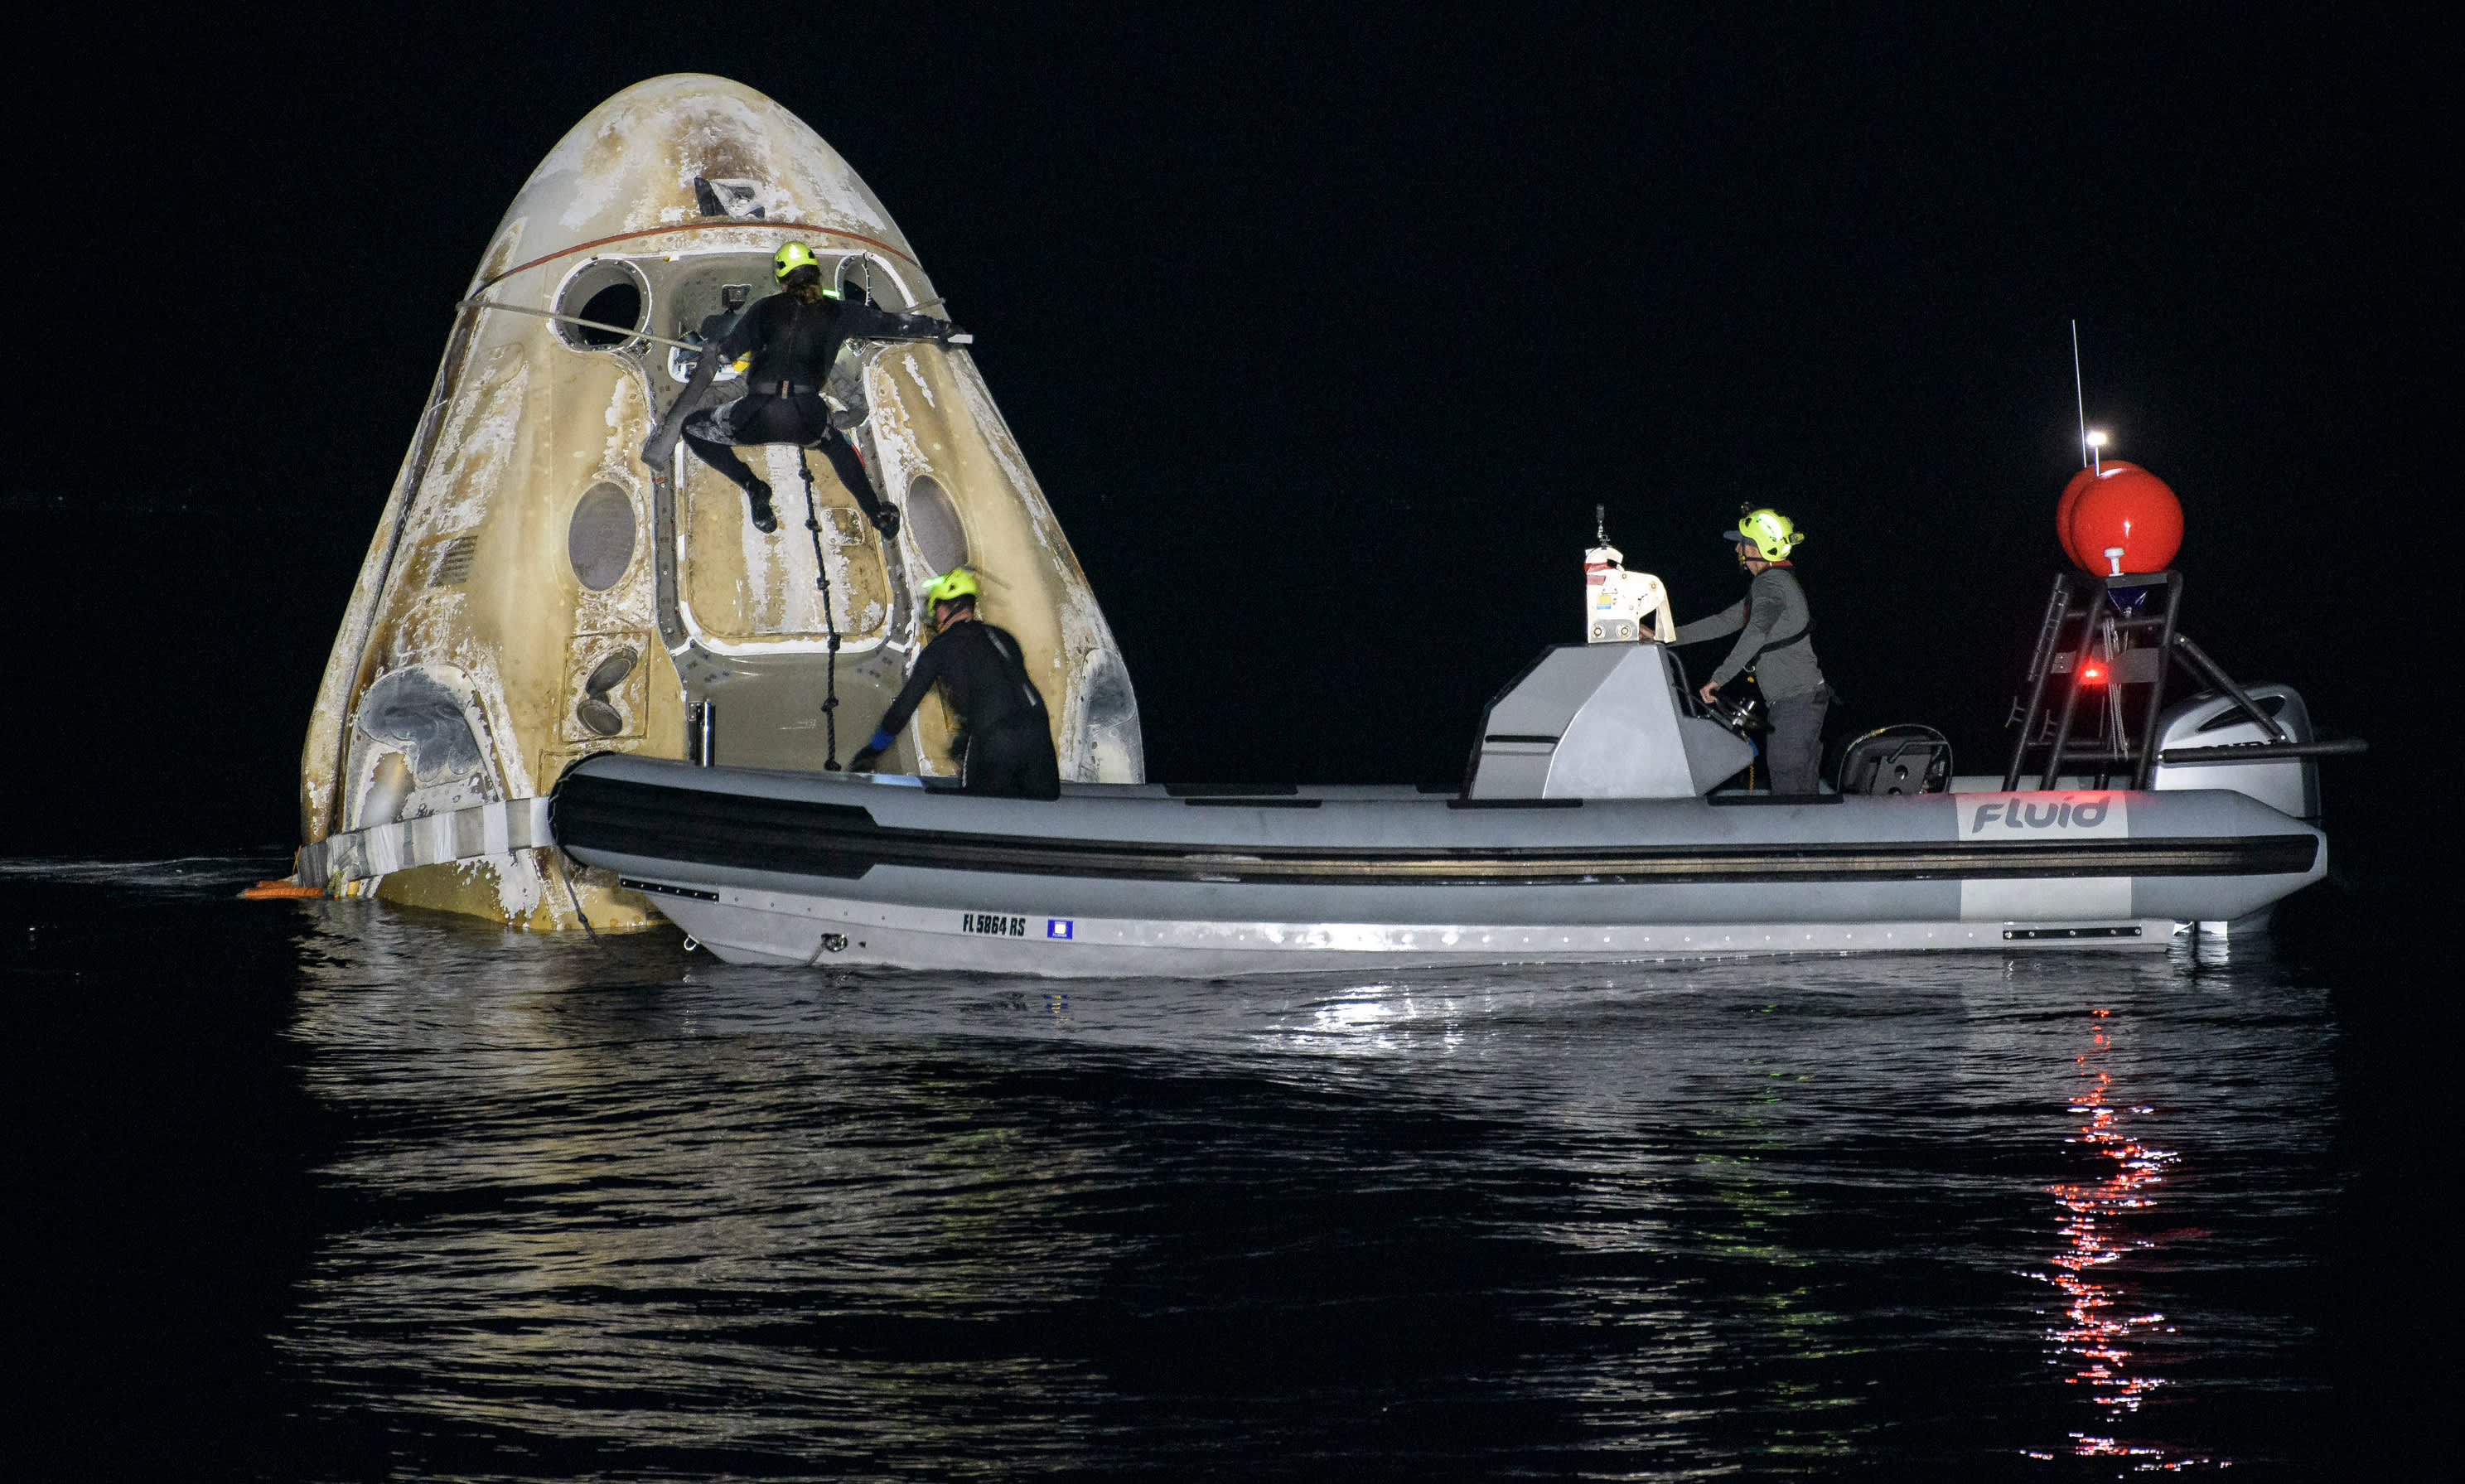 SpaceX Crew-1 mission splashes down with four astronauts after record mission for NASA